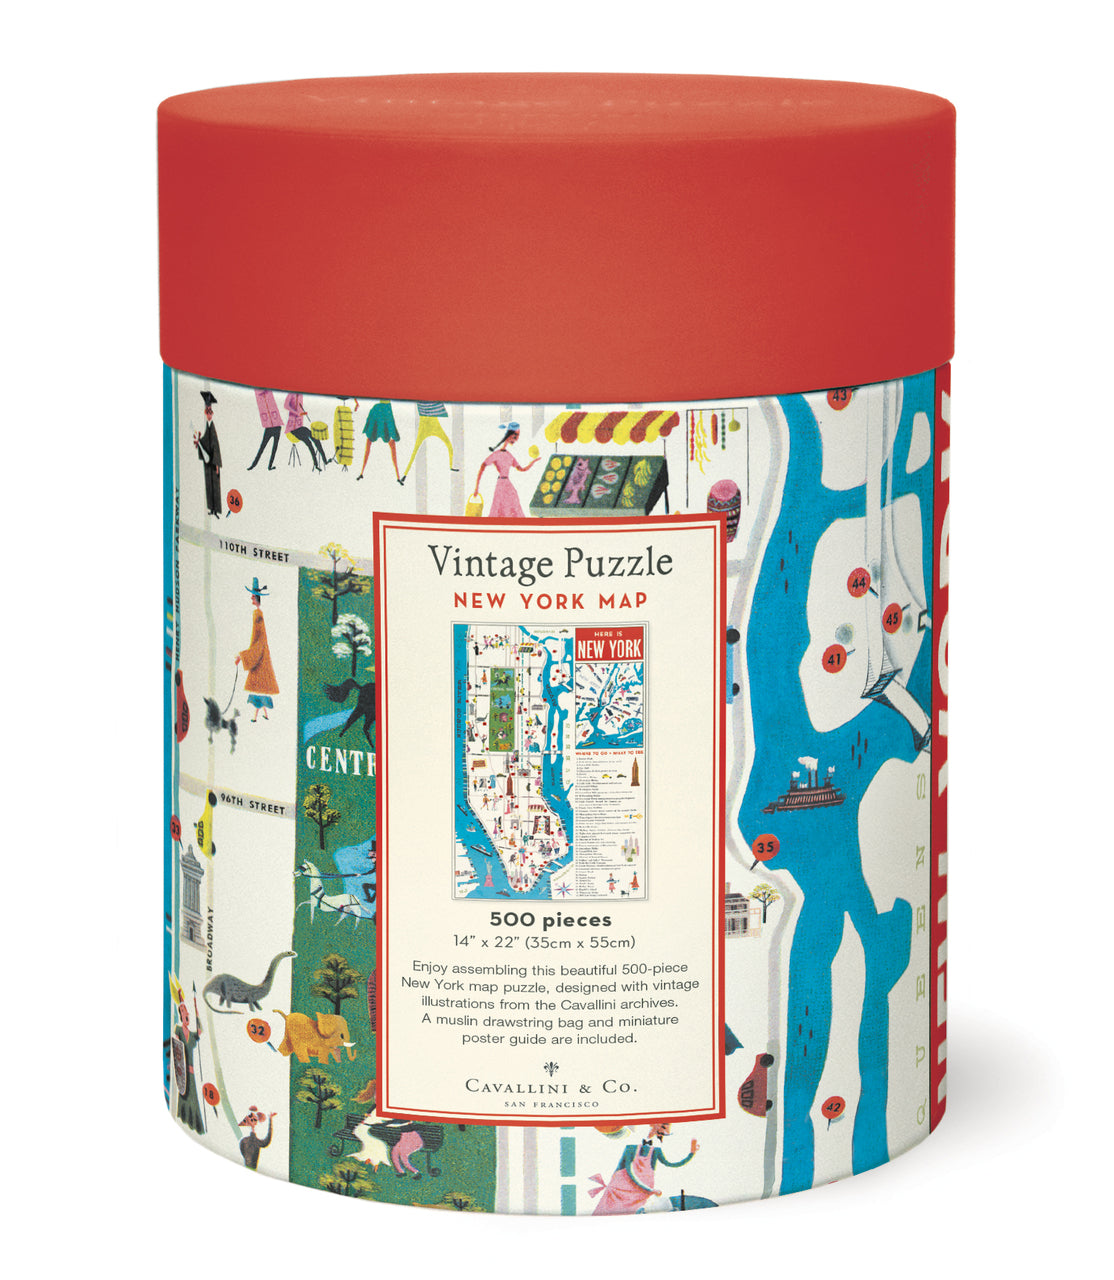 The 500 piece puzzles are packaged in a 6.5 inch long cardboard tube, with puzzle pieces safely stored in a muslin bag inside.